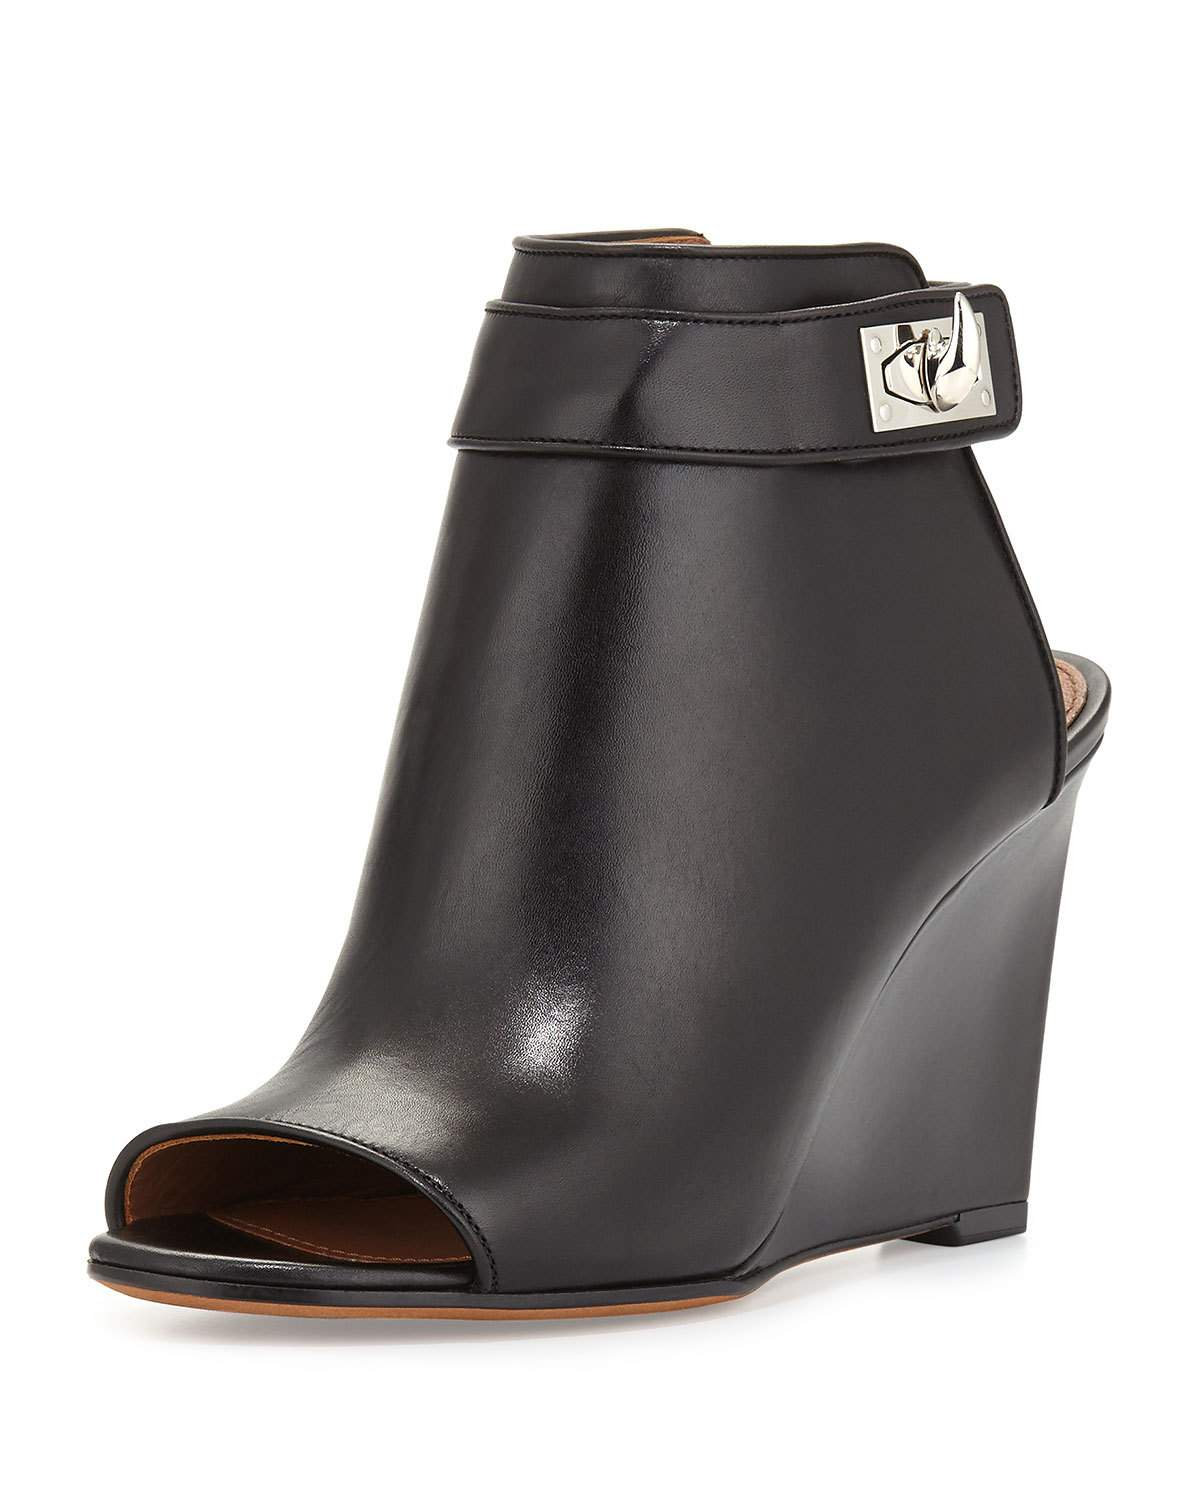 Givenchy Shark-Lock Wedge Bootie